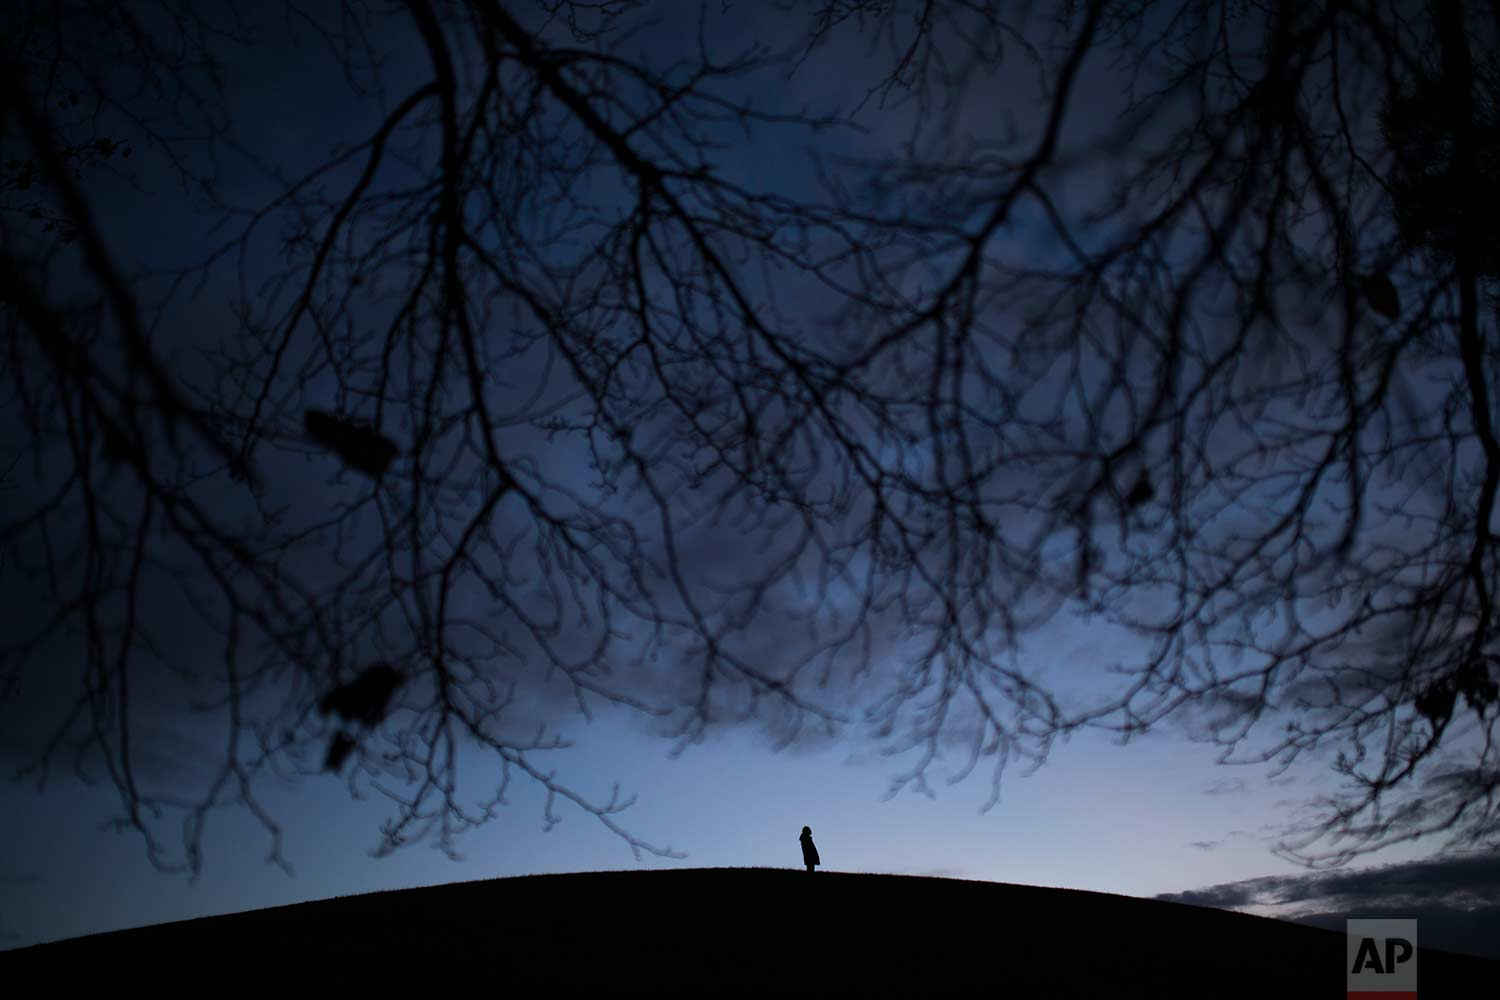 A man stands on top of a small hill at the Tio Pio park in Madrid, Monday, Dec. 11, 2017. (AP Photo/Francisco Seco)